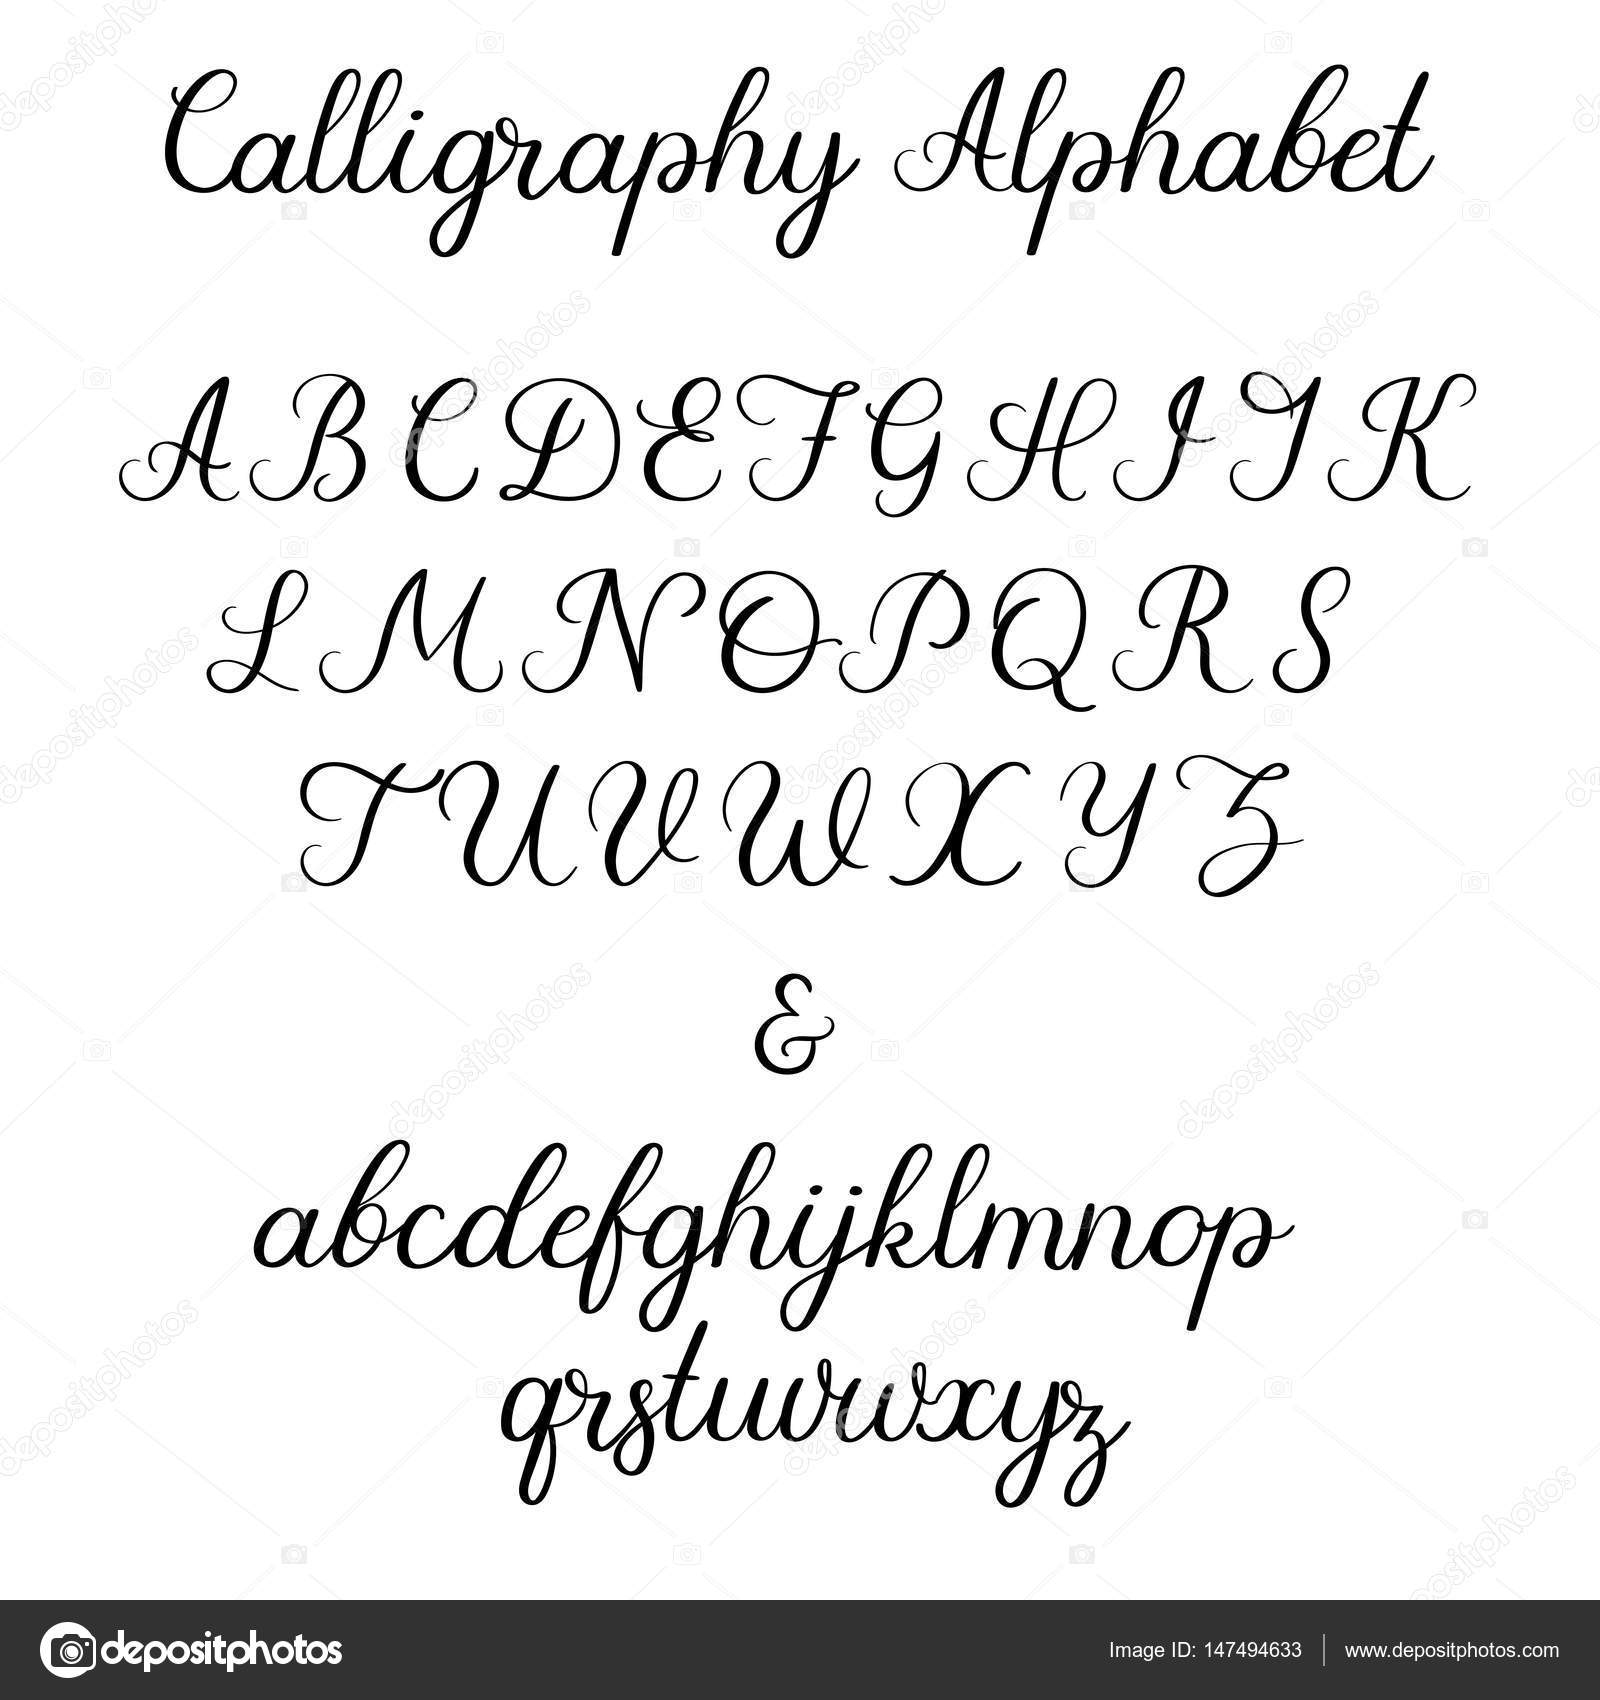 Calligraphic Vector Font Uppercase Lowercase Ampersand Wedding Brush Calligraphy Handwritten Script Alphabet By Anmark